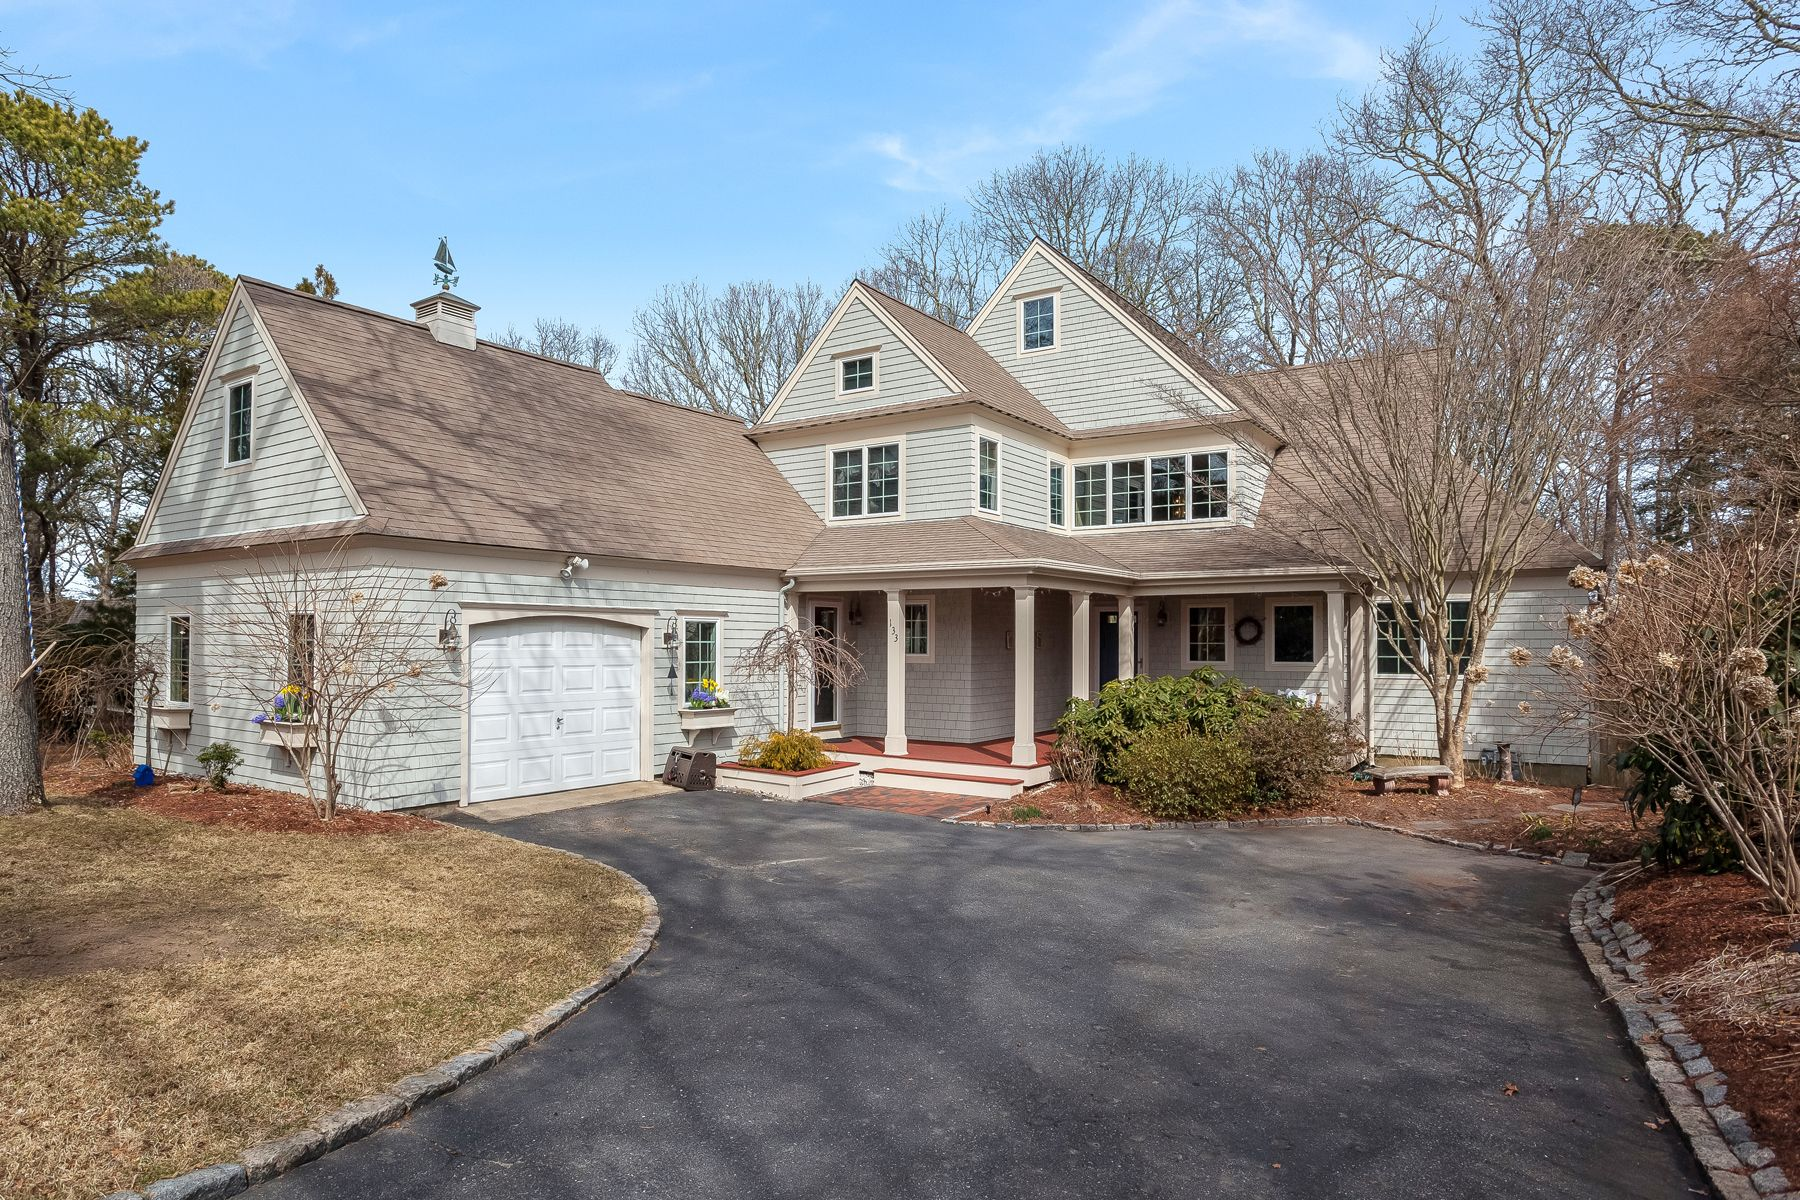 Single Family Home for Active at 133 Summersea Road Mashpee, Massachusetts 02649 United States